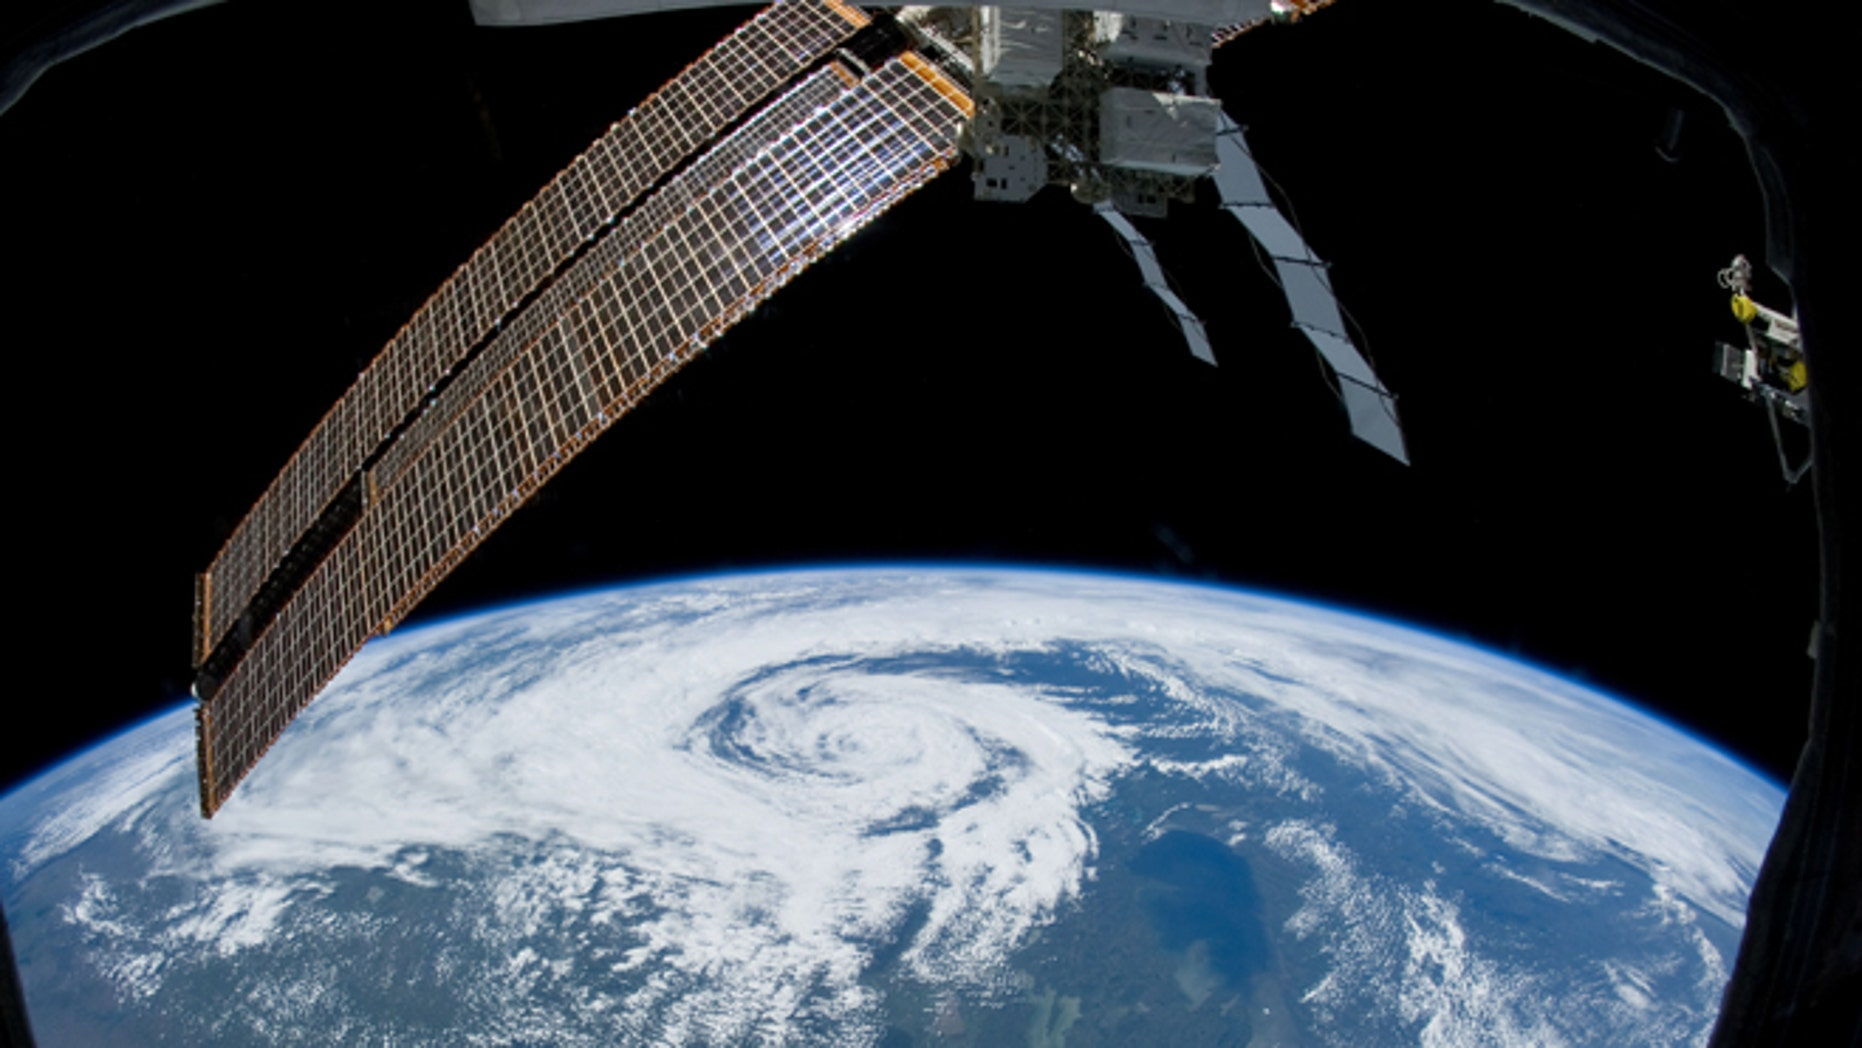 This June 27, 2012 photo released by NASA shows a view aboard the International Space Station, about 240 miles above Earth, featuring a non-tropical cyclone located over northern Saskatchewan, Canada.